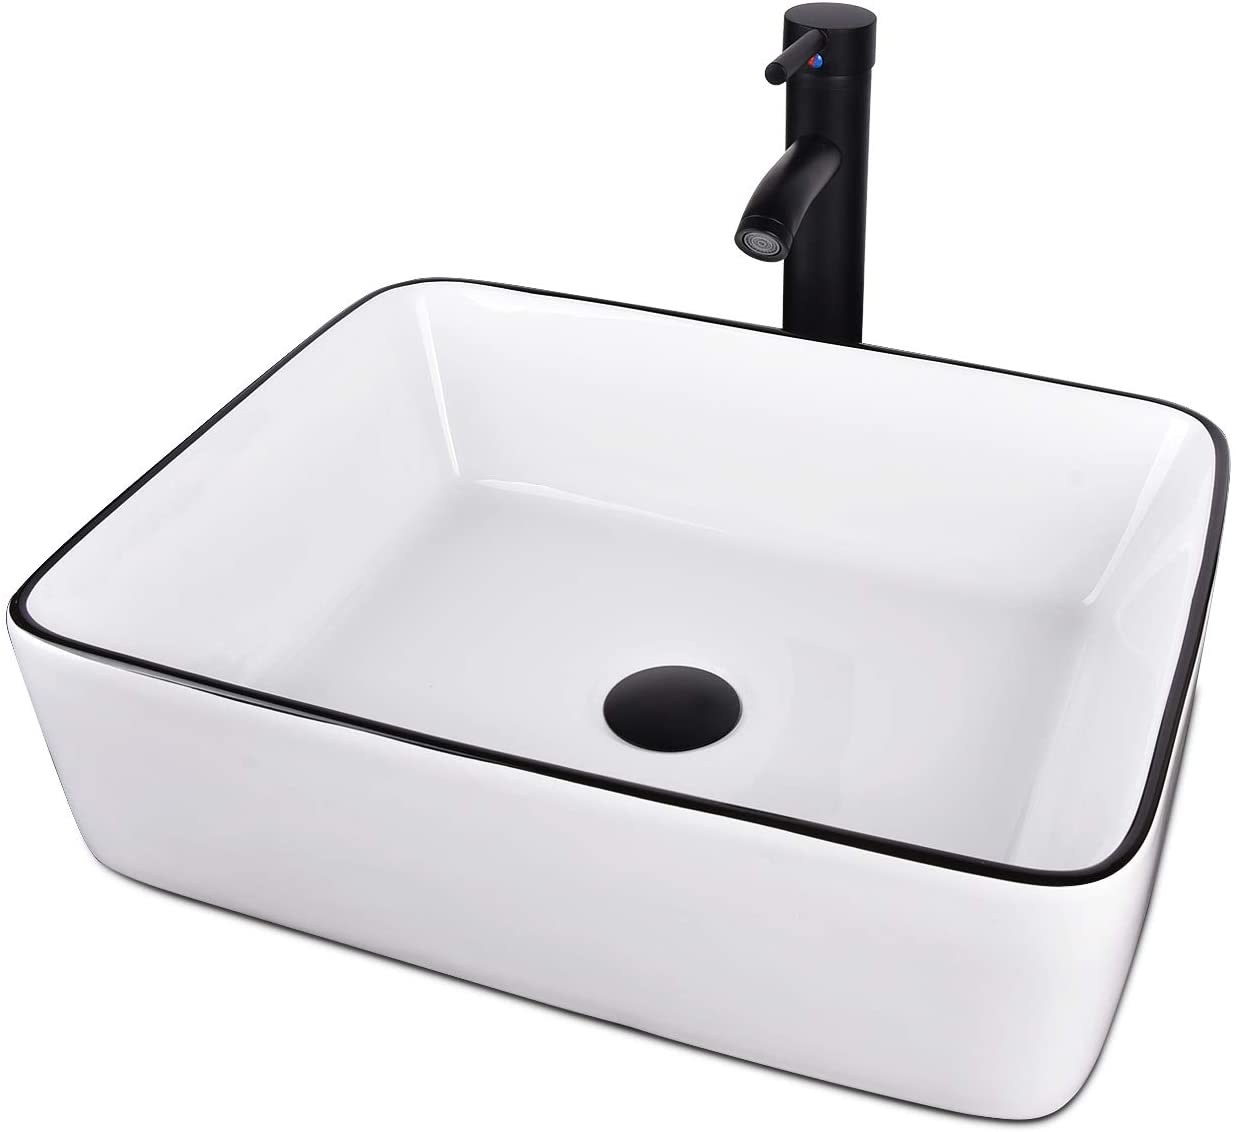 White Ceramic Square Bathroom Sink Vessel Sink Square Amazon Co Uk Diy Tools